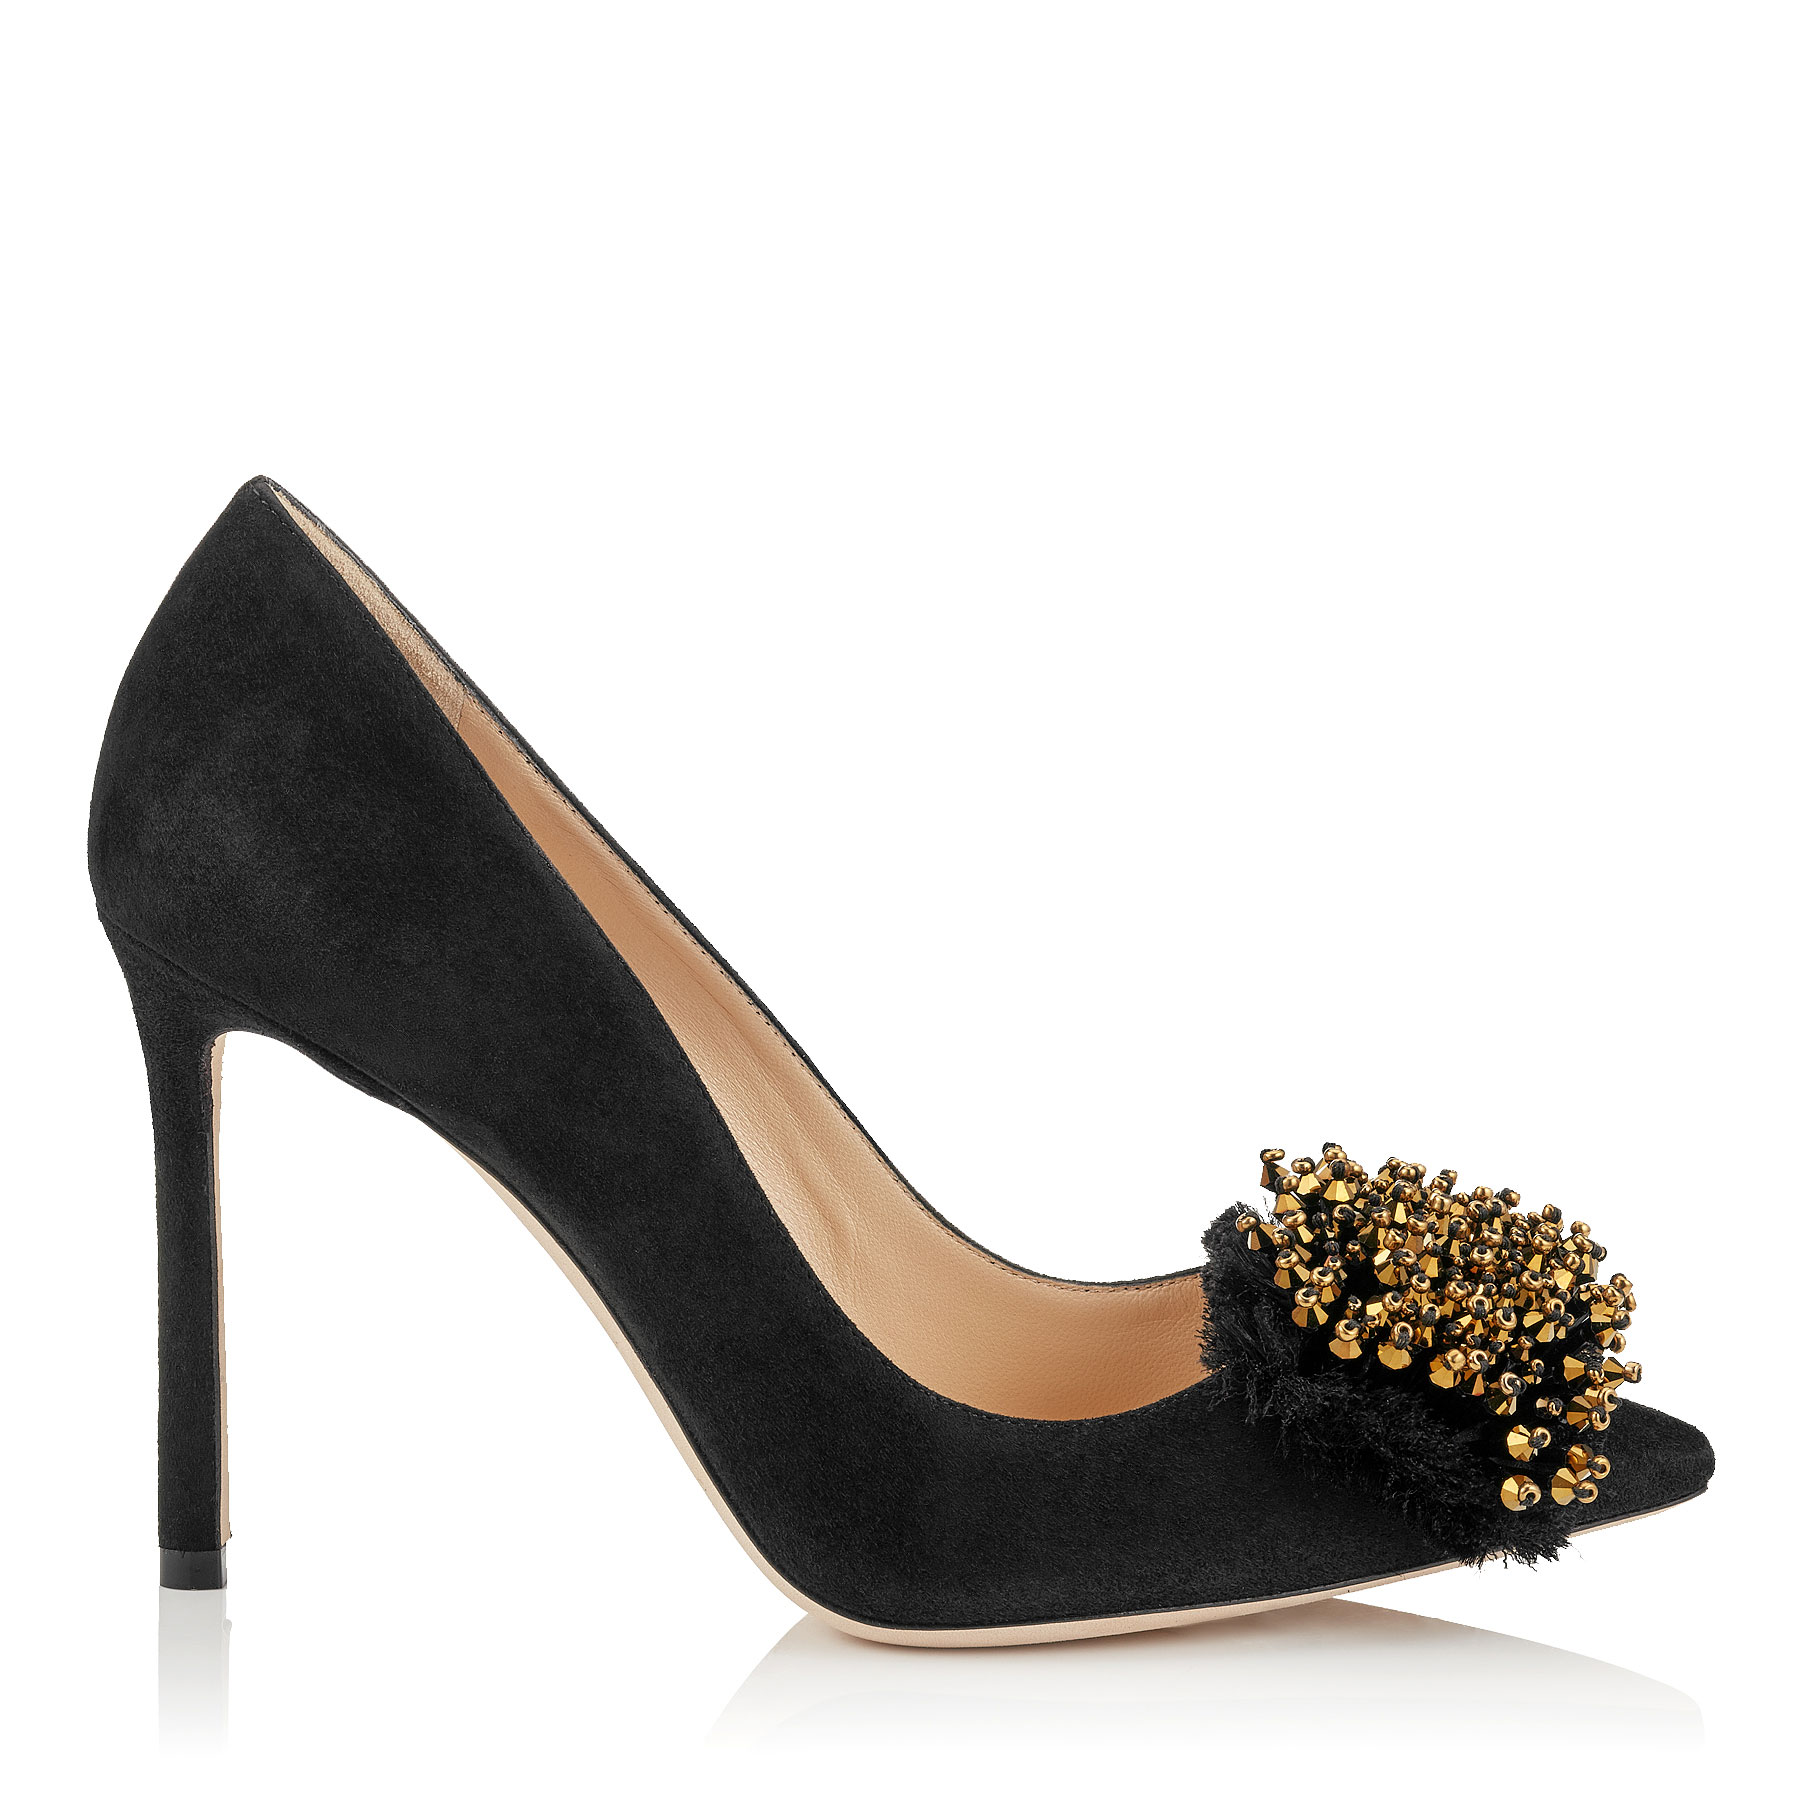 Photo of THELMA 100 Black Suede Heels with Antique Gold Crystal Embroidery by Jimmy Choo womens shoes - buy Jimmy Choo footwear online